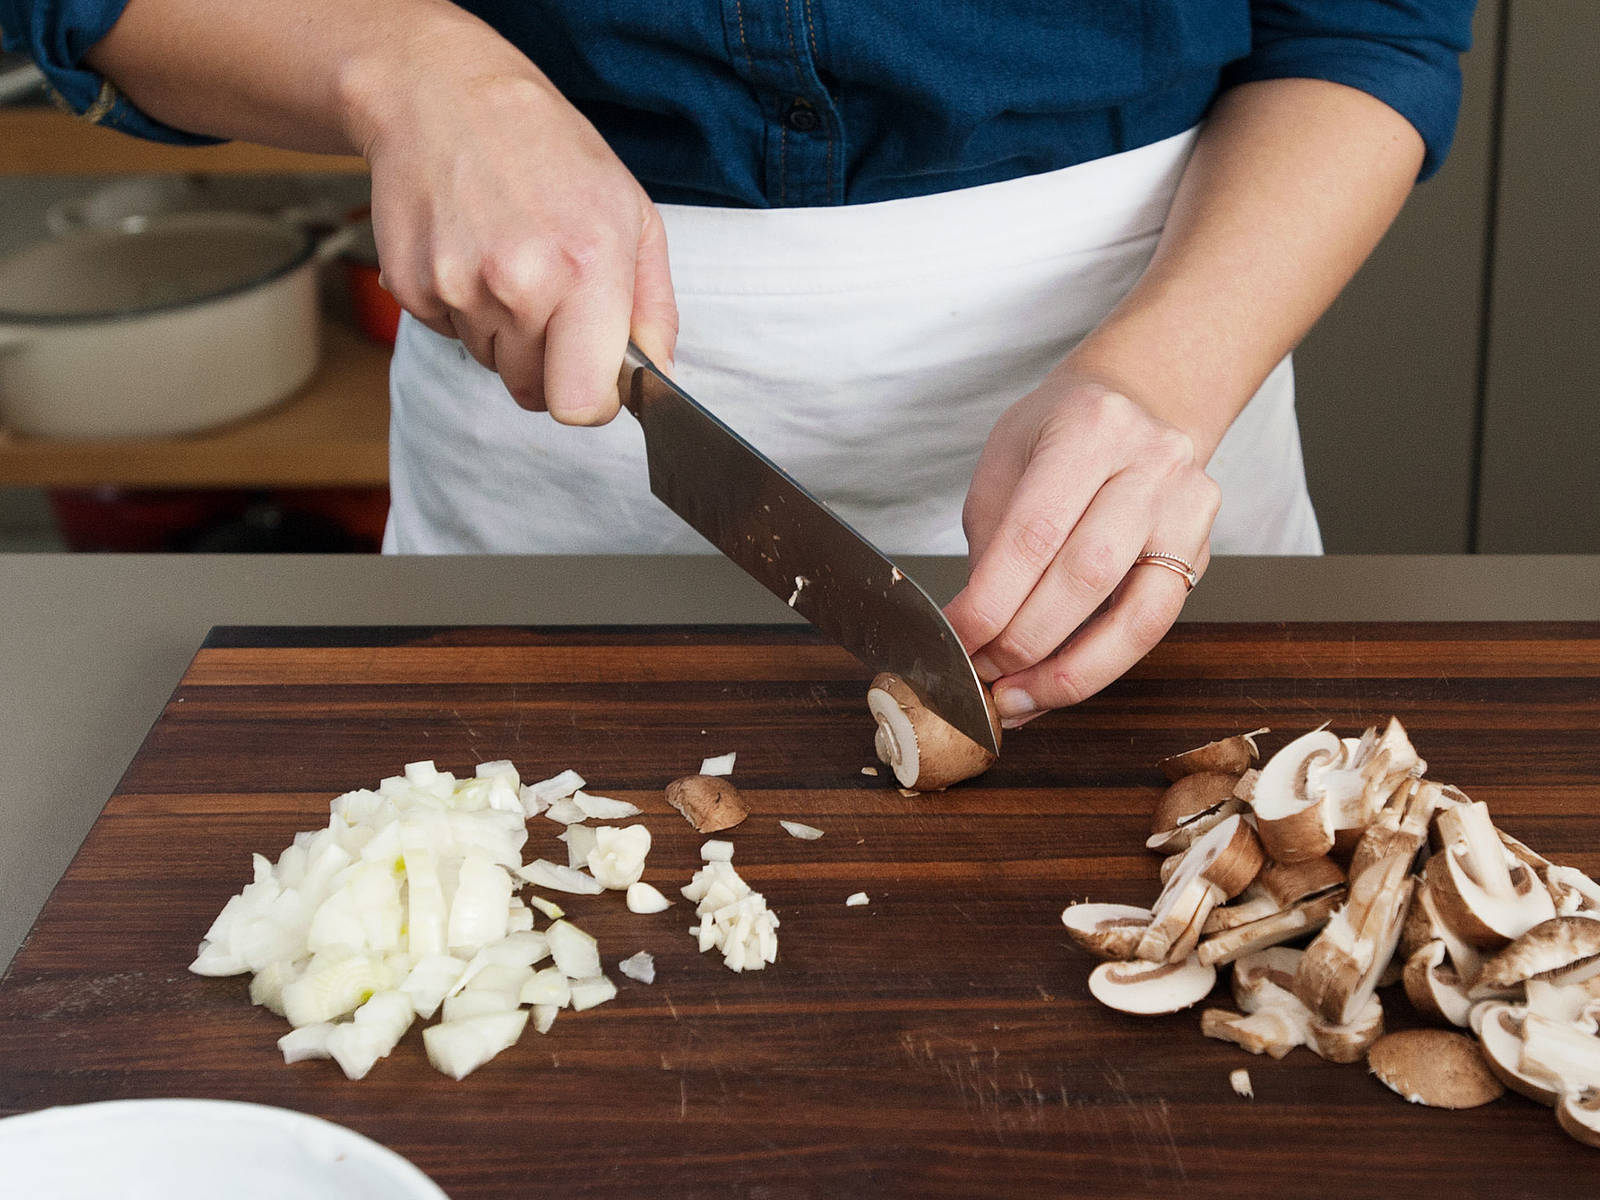 In the meantime, clean and cut mushrooms into thin slices for the mushroom sauce. Cut onion into small cubes. Finely dice garlic.